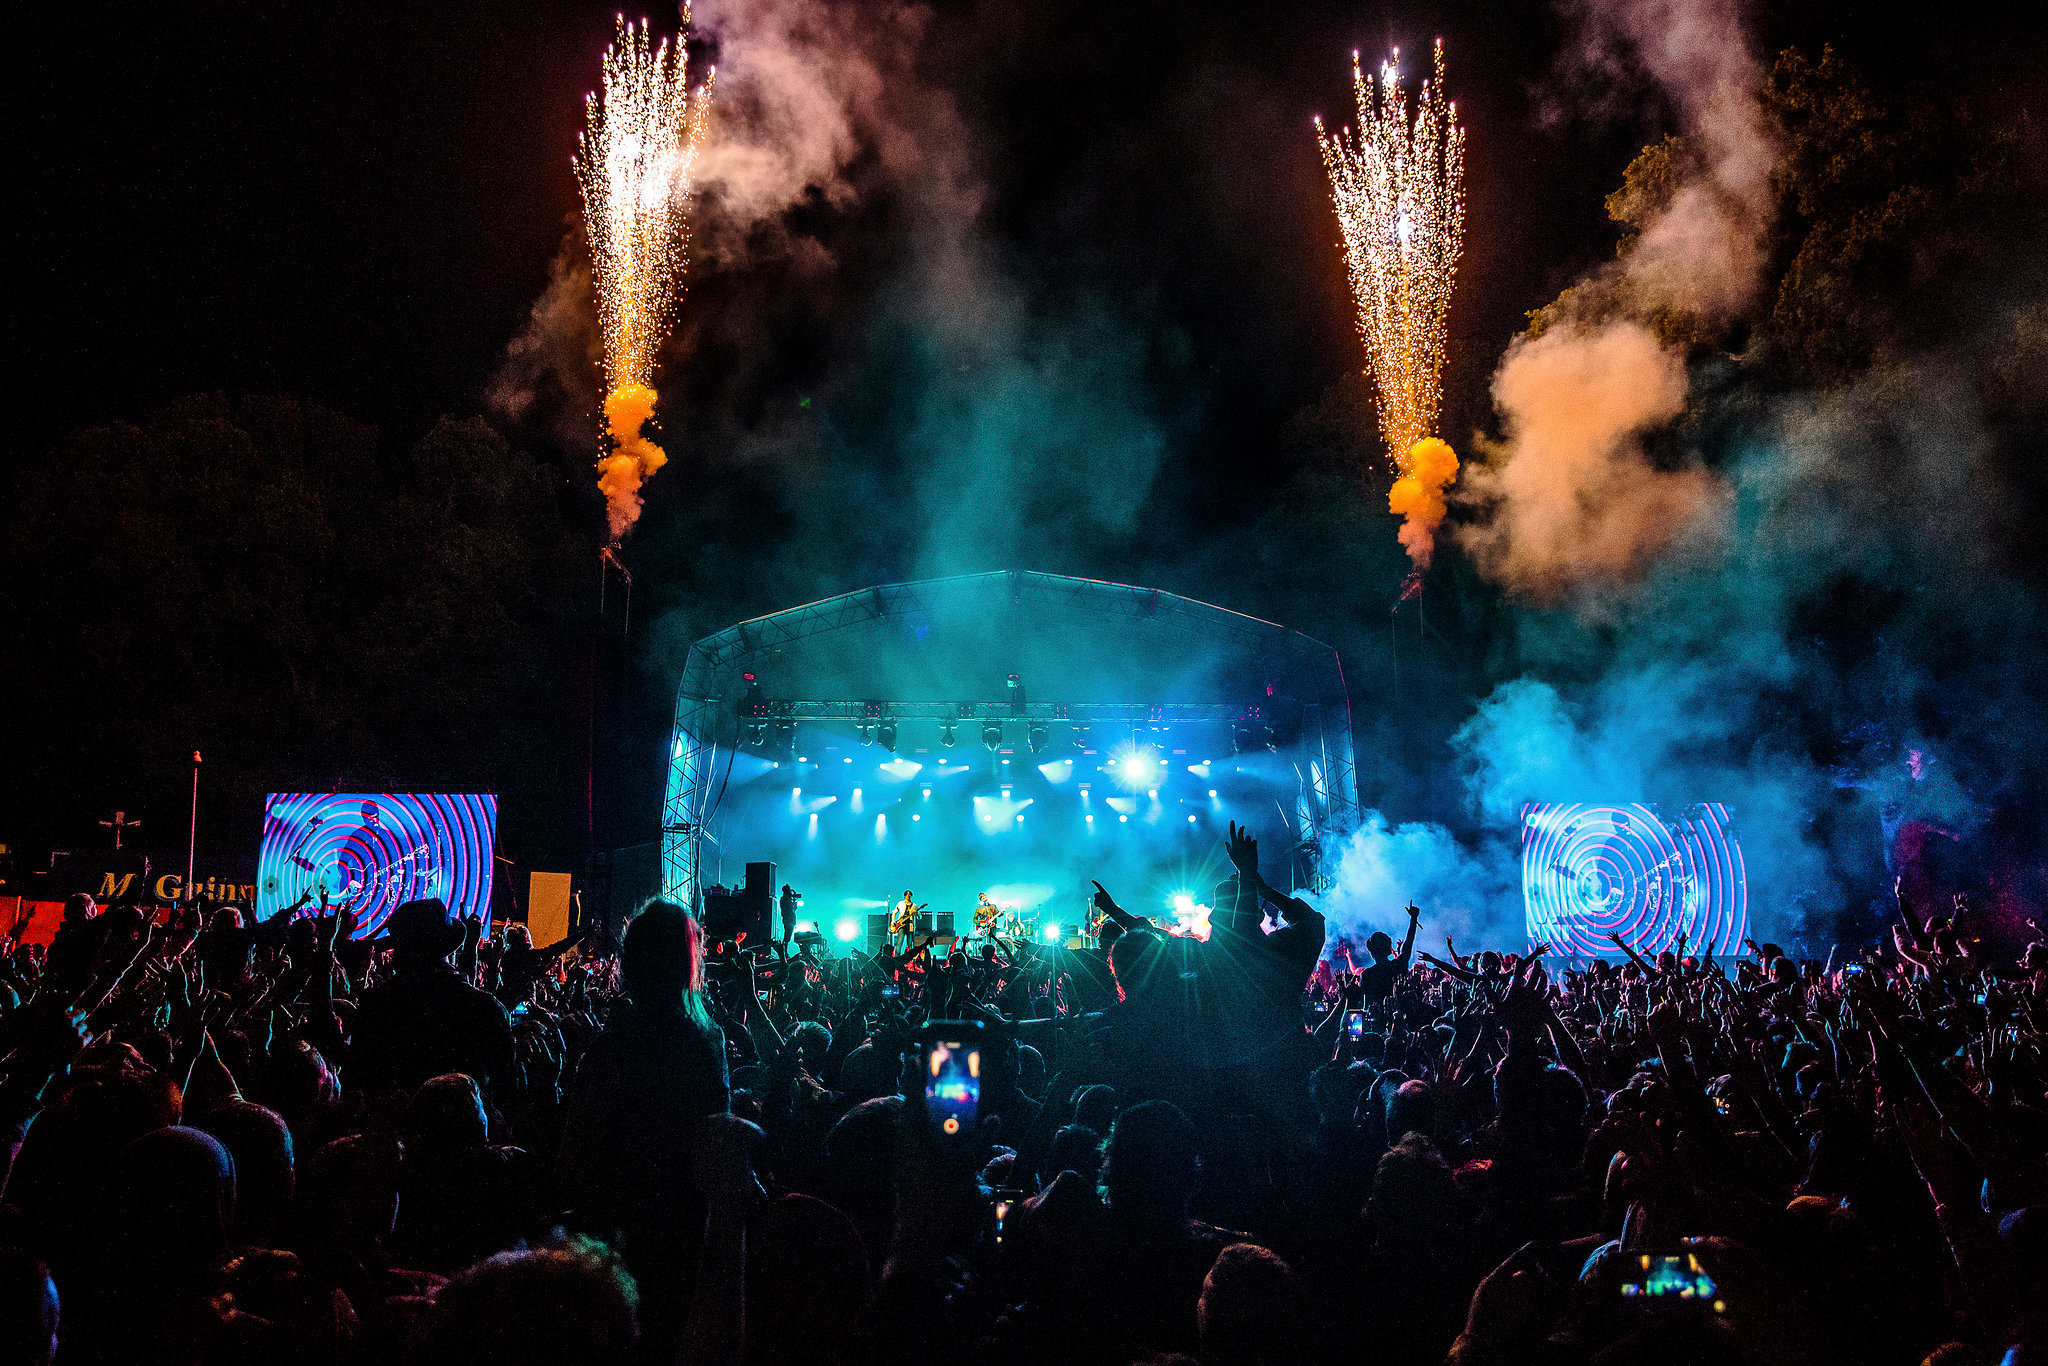 The main stage at Kendal Calling. Credit: Kendal Calling